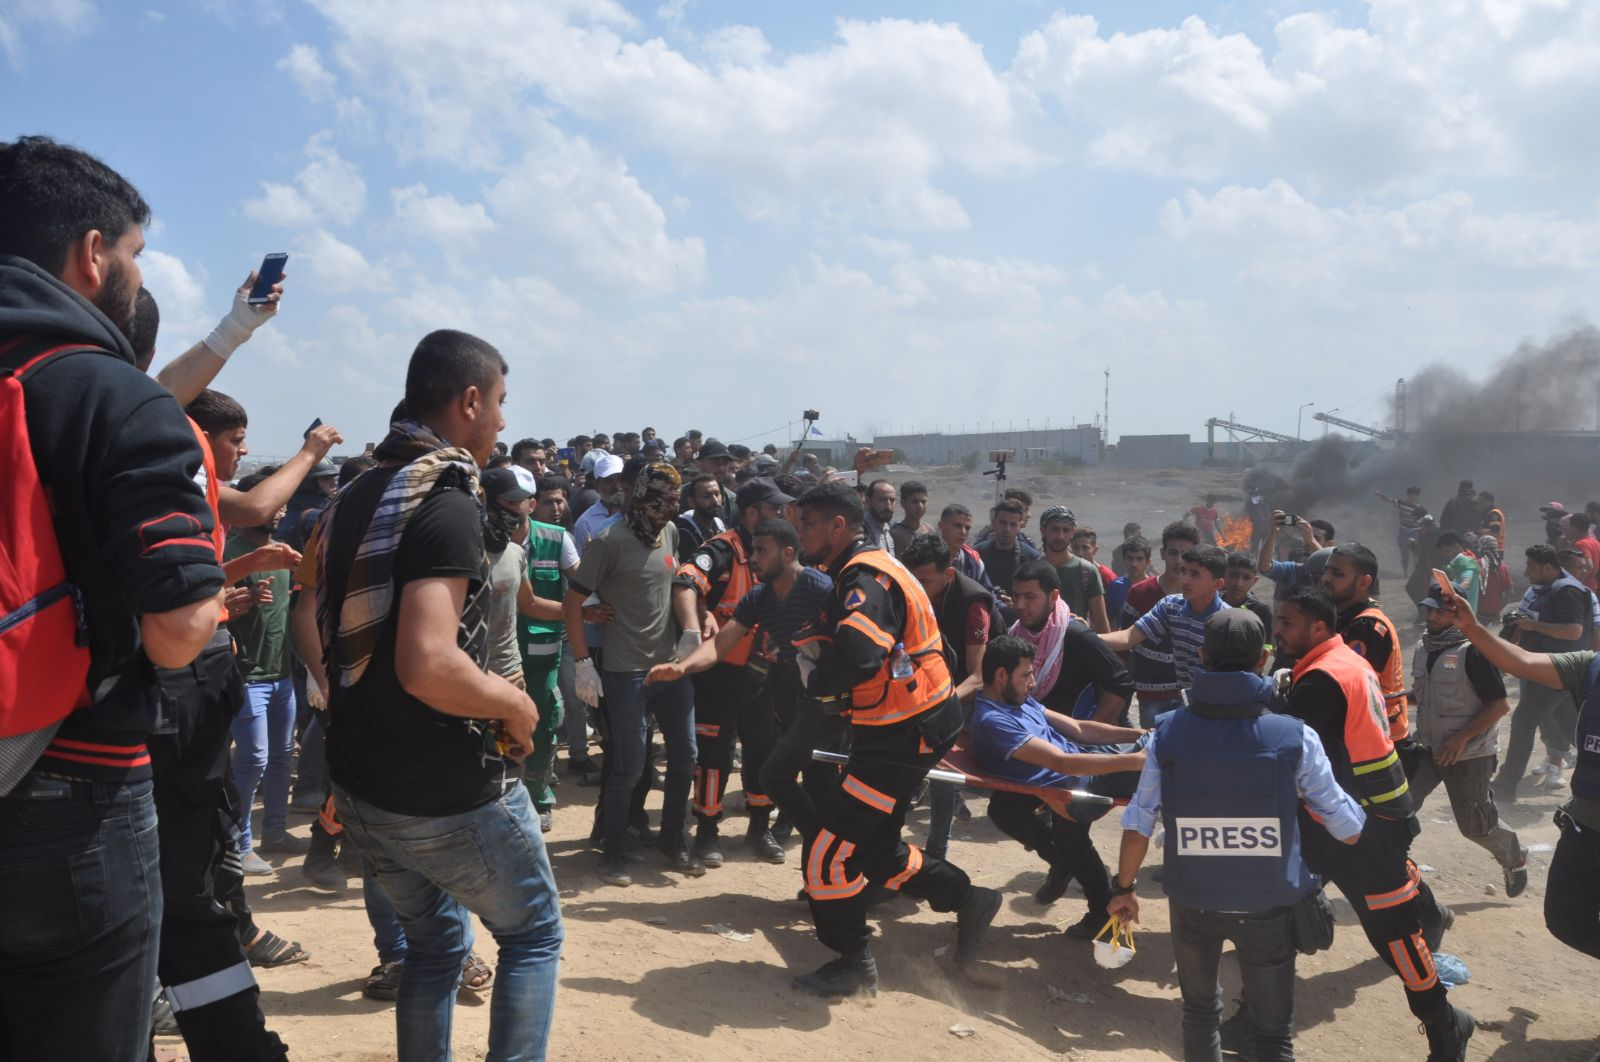 Civilian Wounded near the border fence in Eastern Gaza City